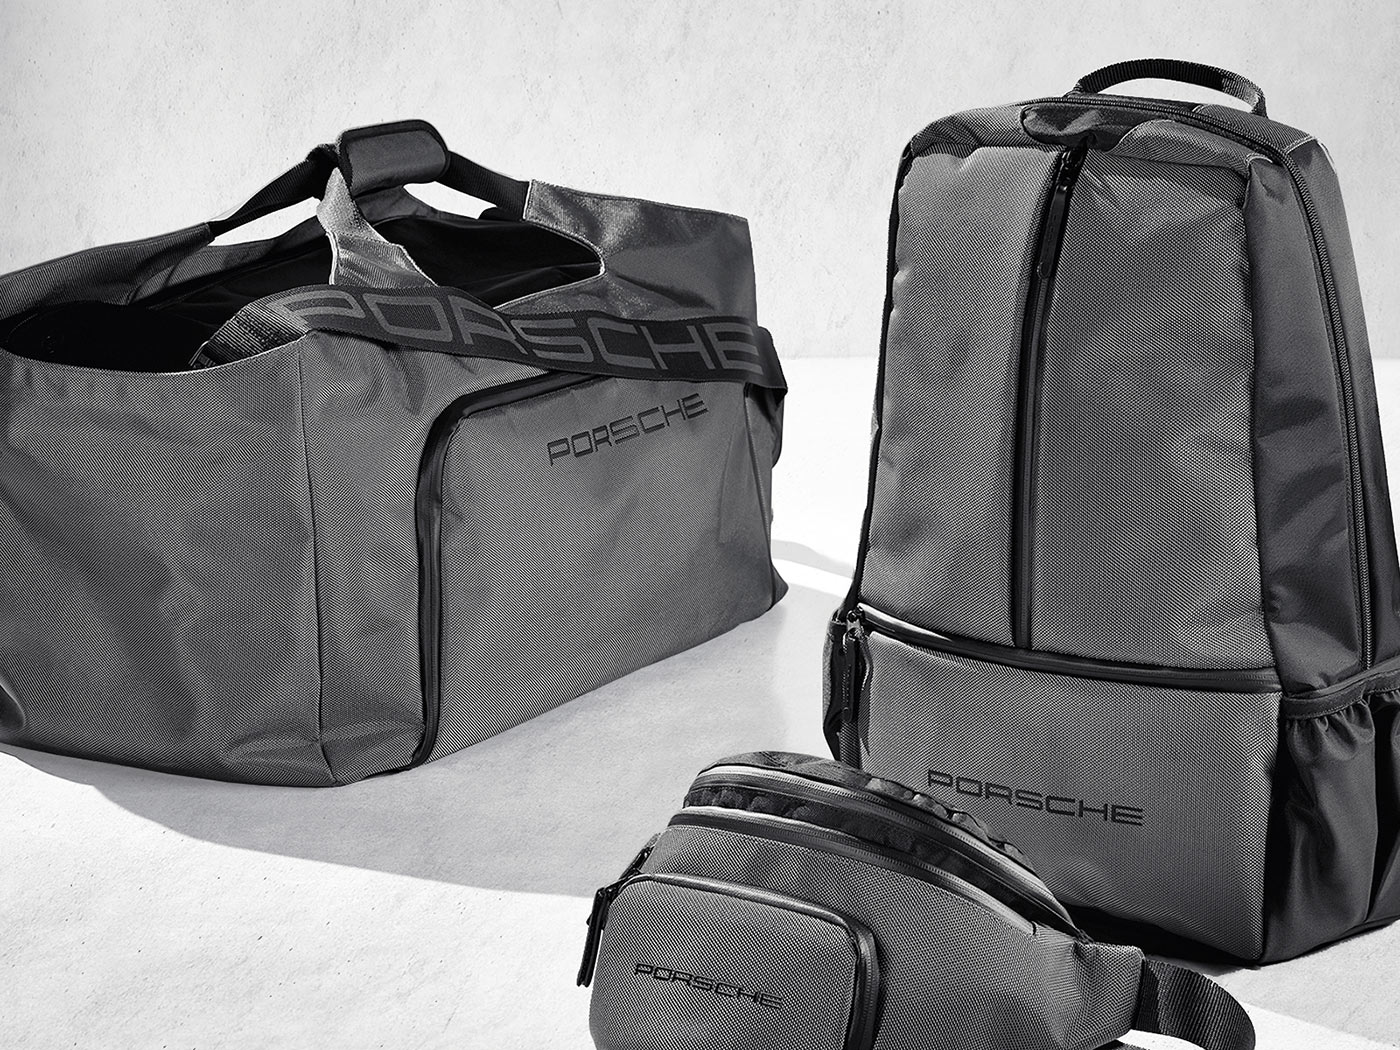 Porsche Sports Bag And Backpack Envary